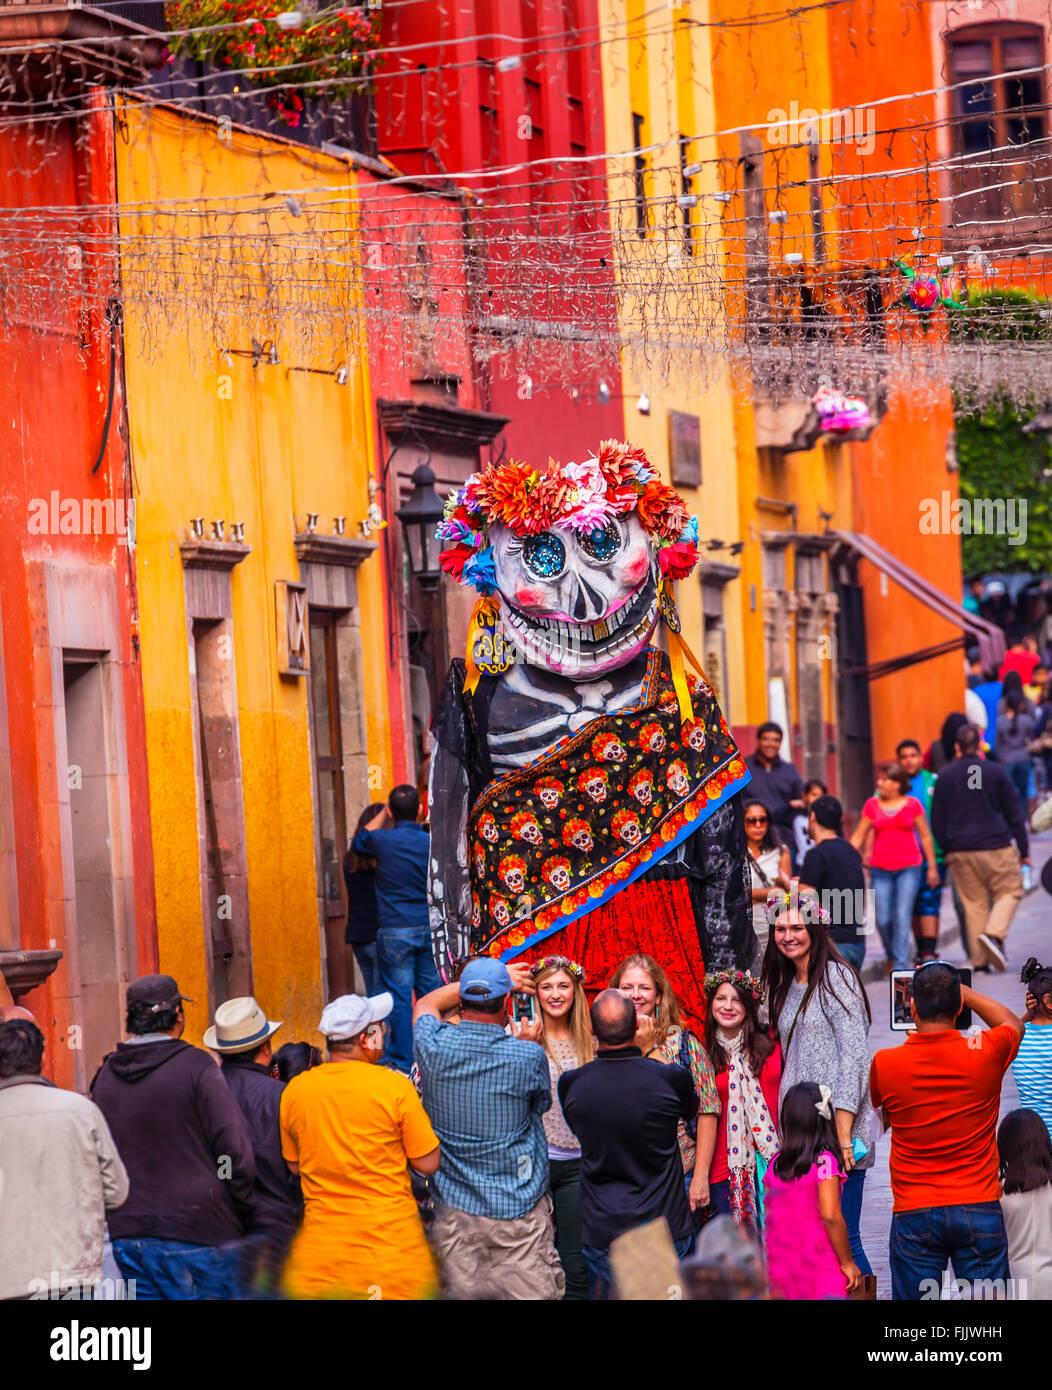 Tall Walking Puppet Mascot Tourists Jardin Town Square San Miguel de Allende Mexico. - Stock Image